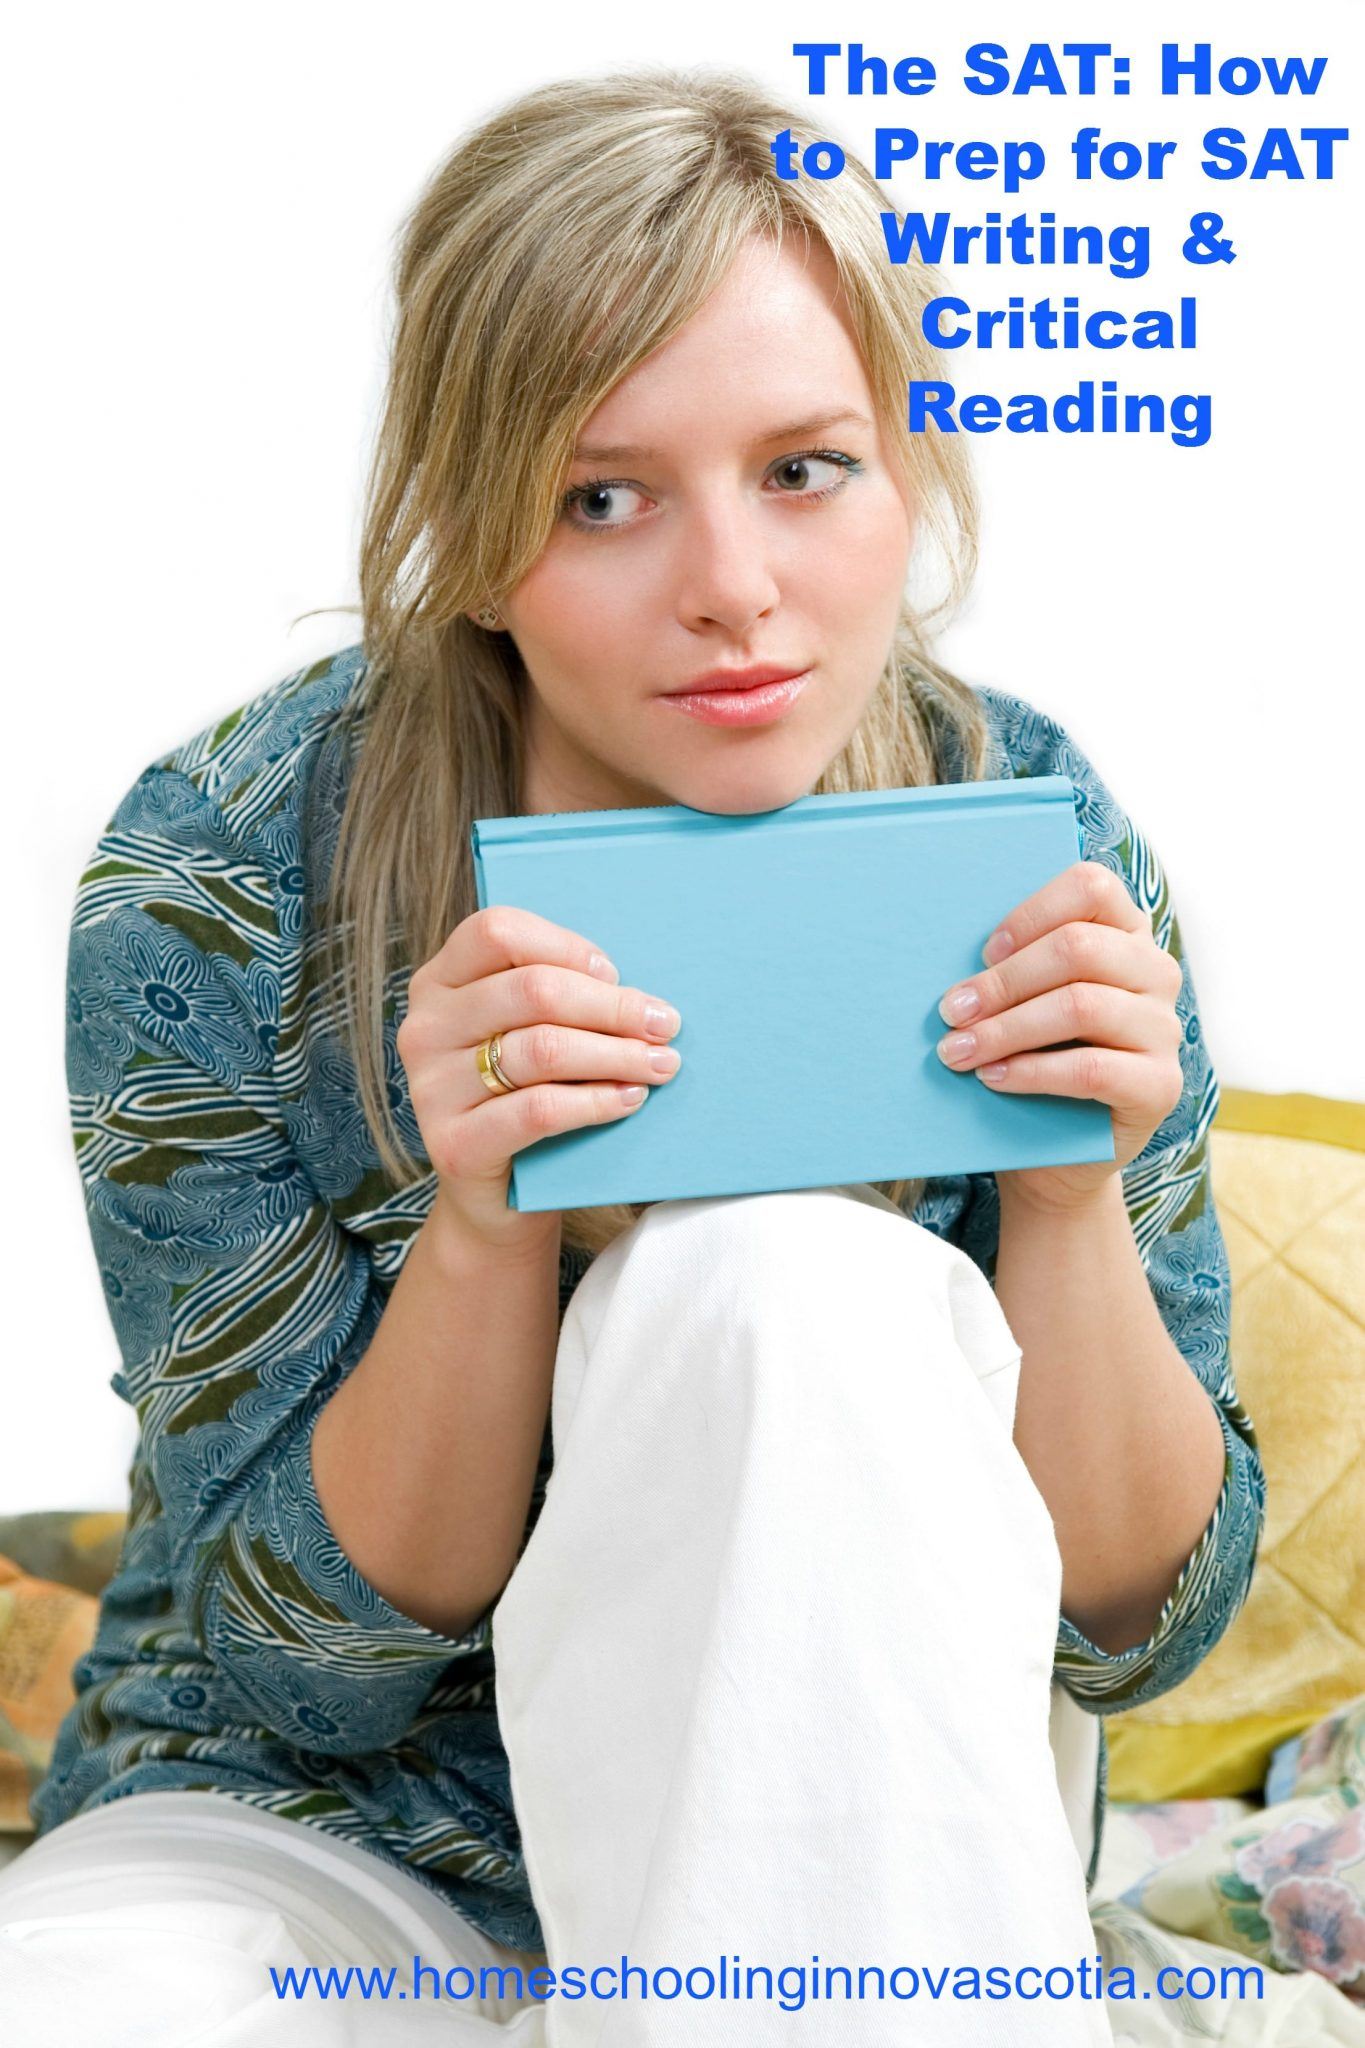 The SAT: Writing and Critical Reading